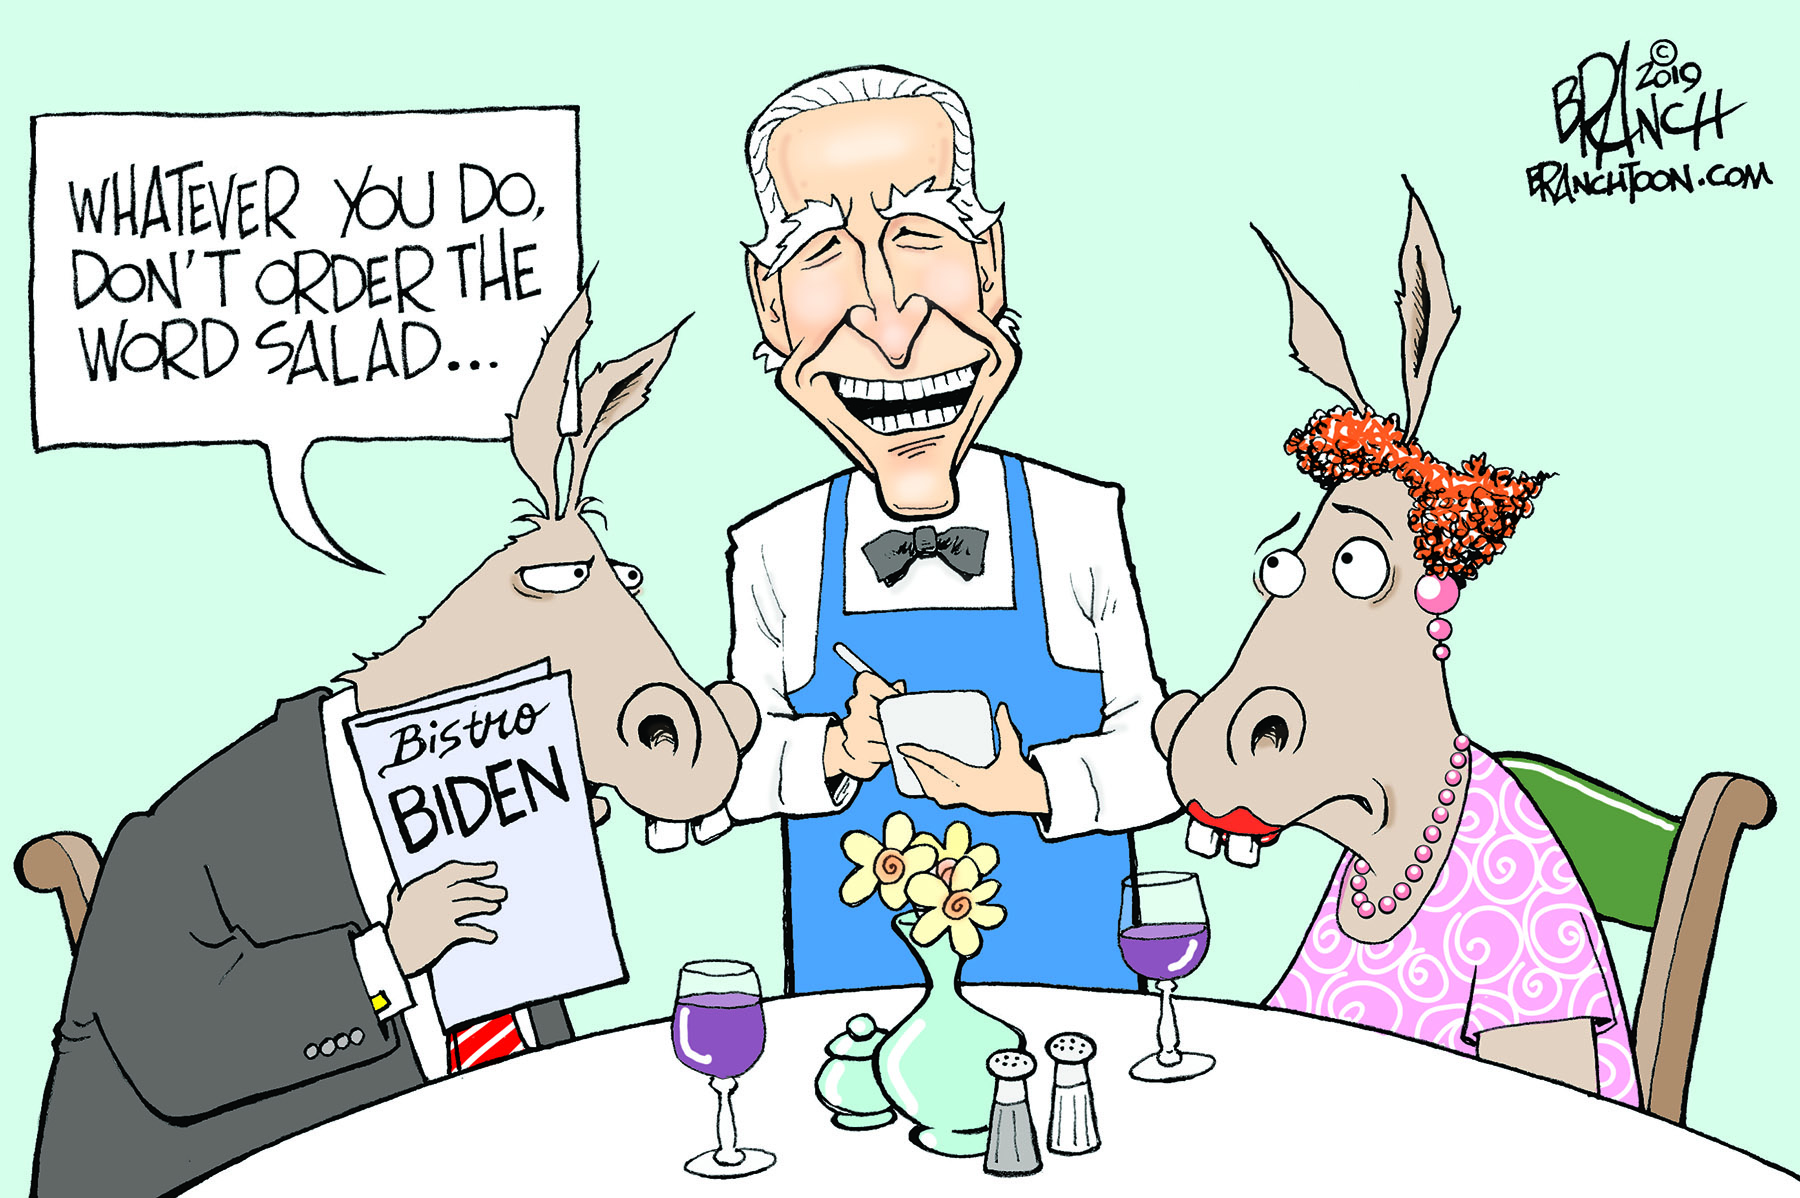 091919-biden-word-salad-web